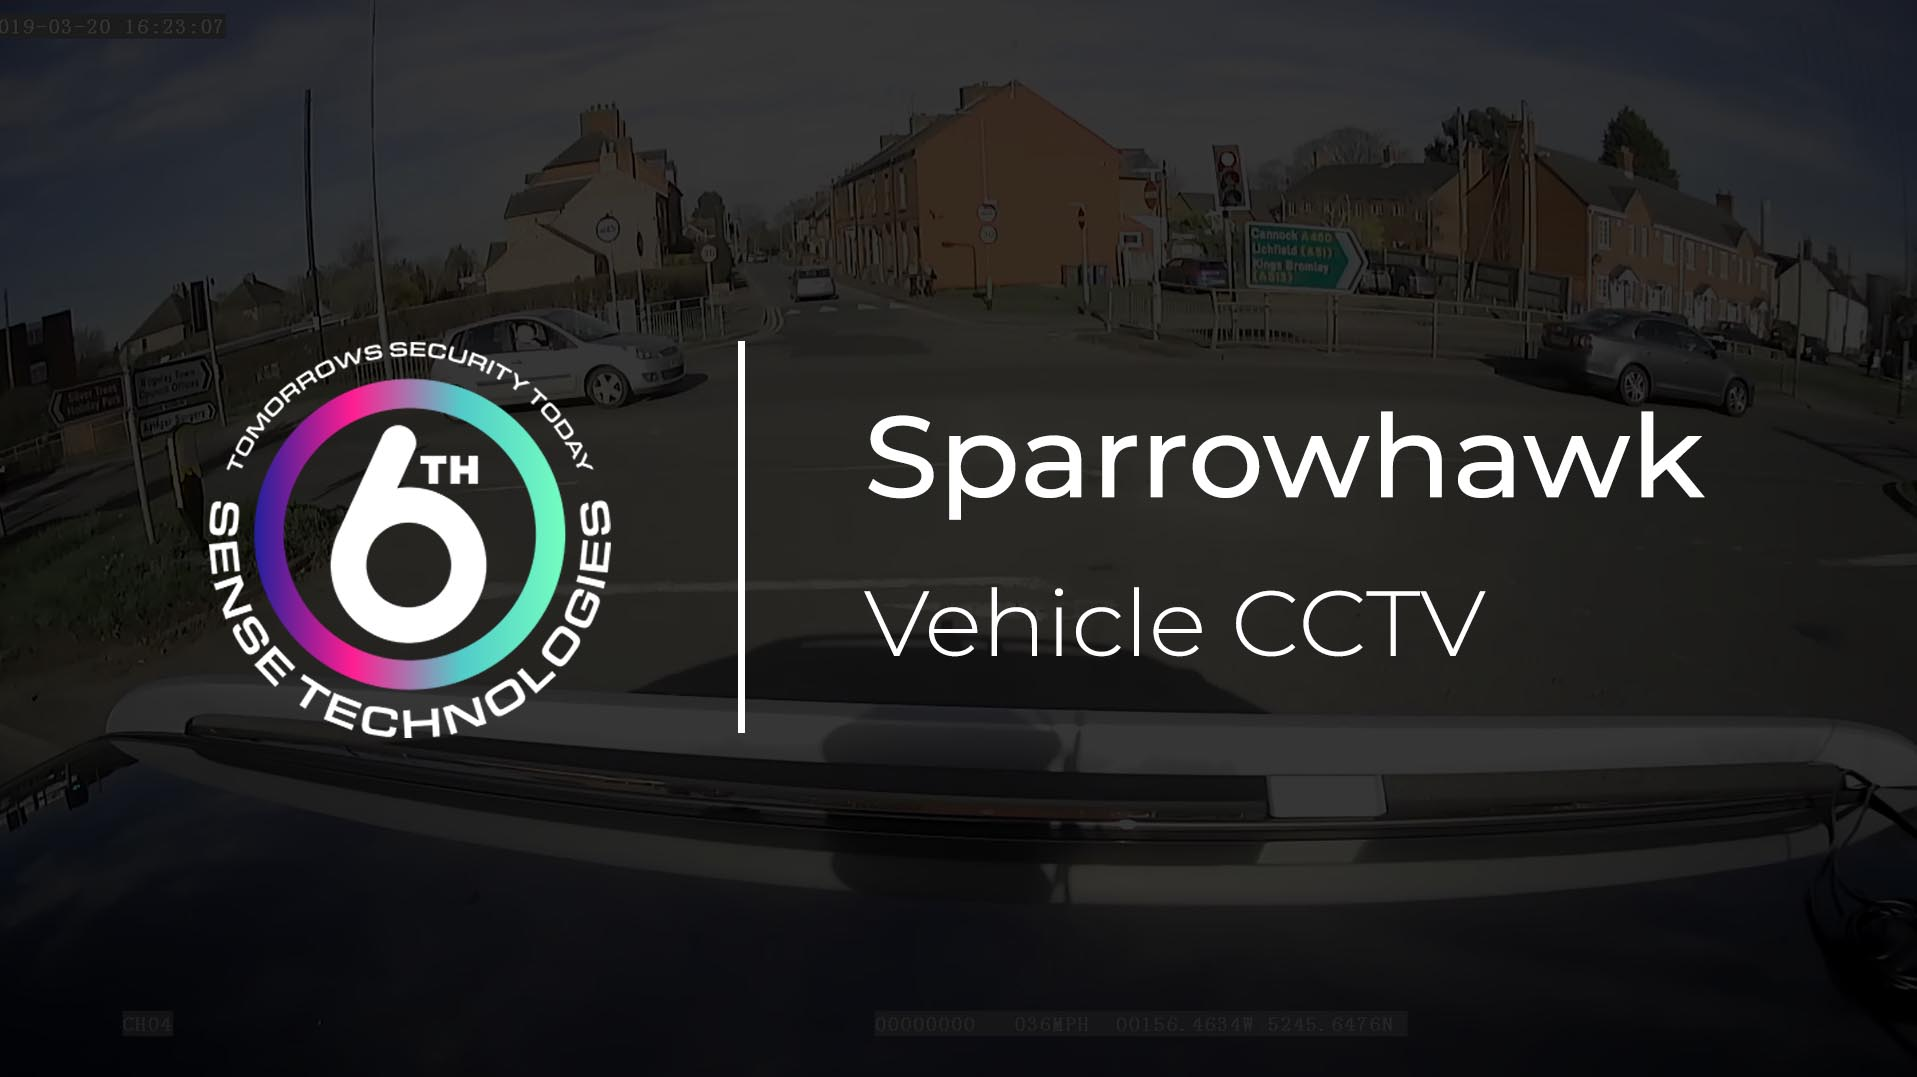 Sparrowhawk Vehicle CCTV